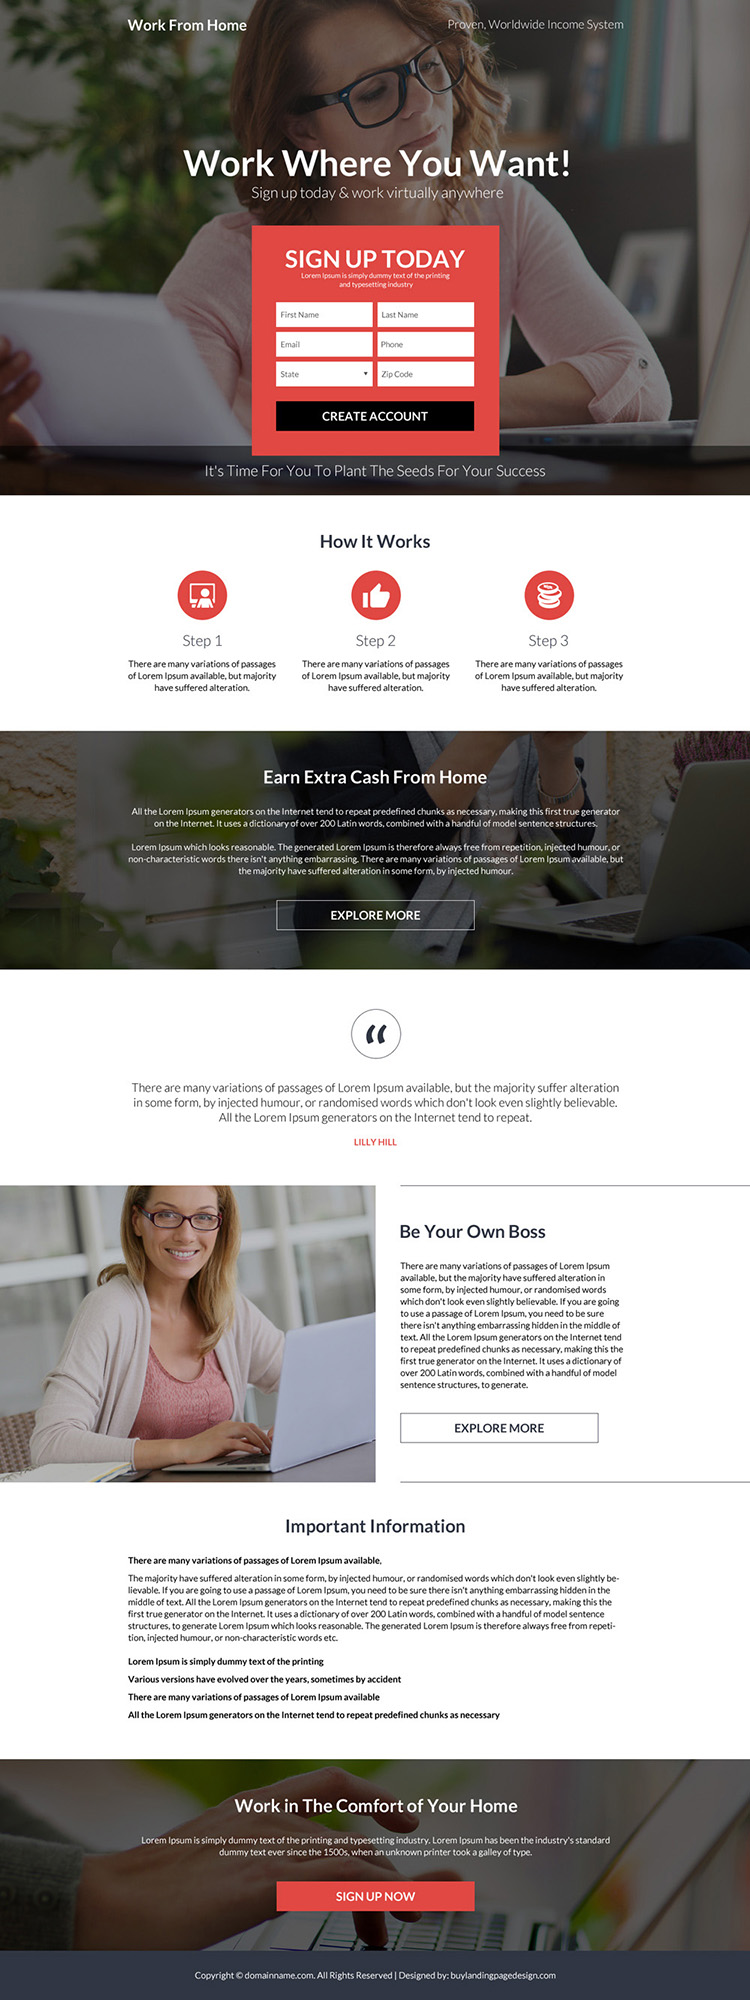 work from home sign up capturing bootstrap landing page